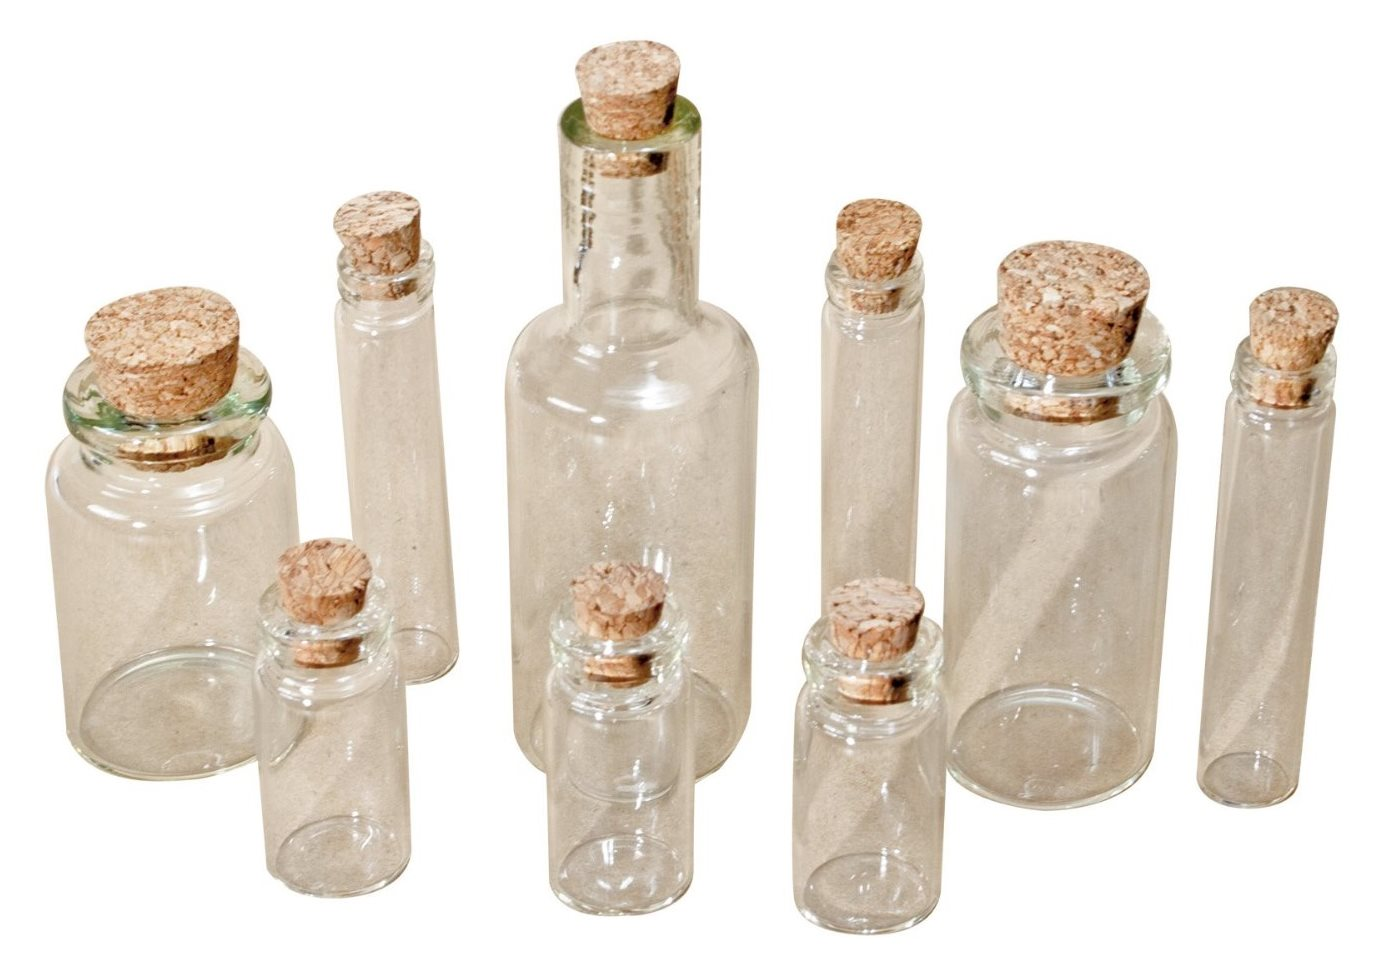 Witches Potion Bottles Set with Corks Halloween Party Idea